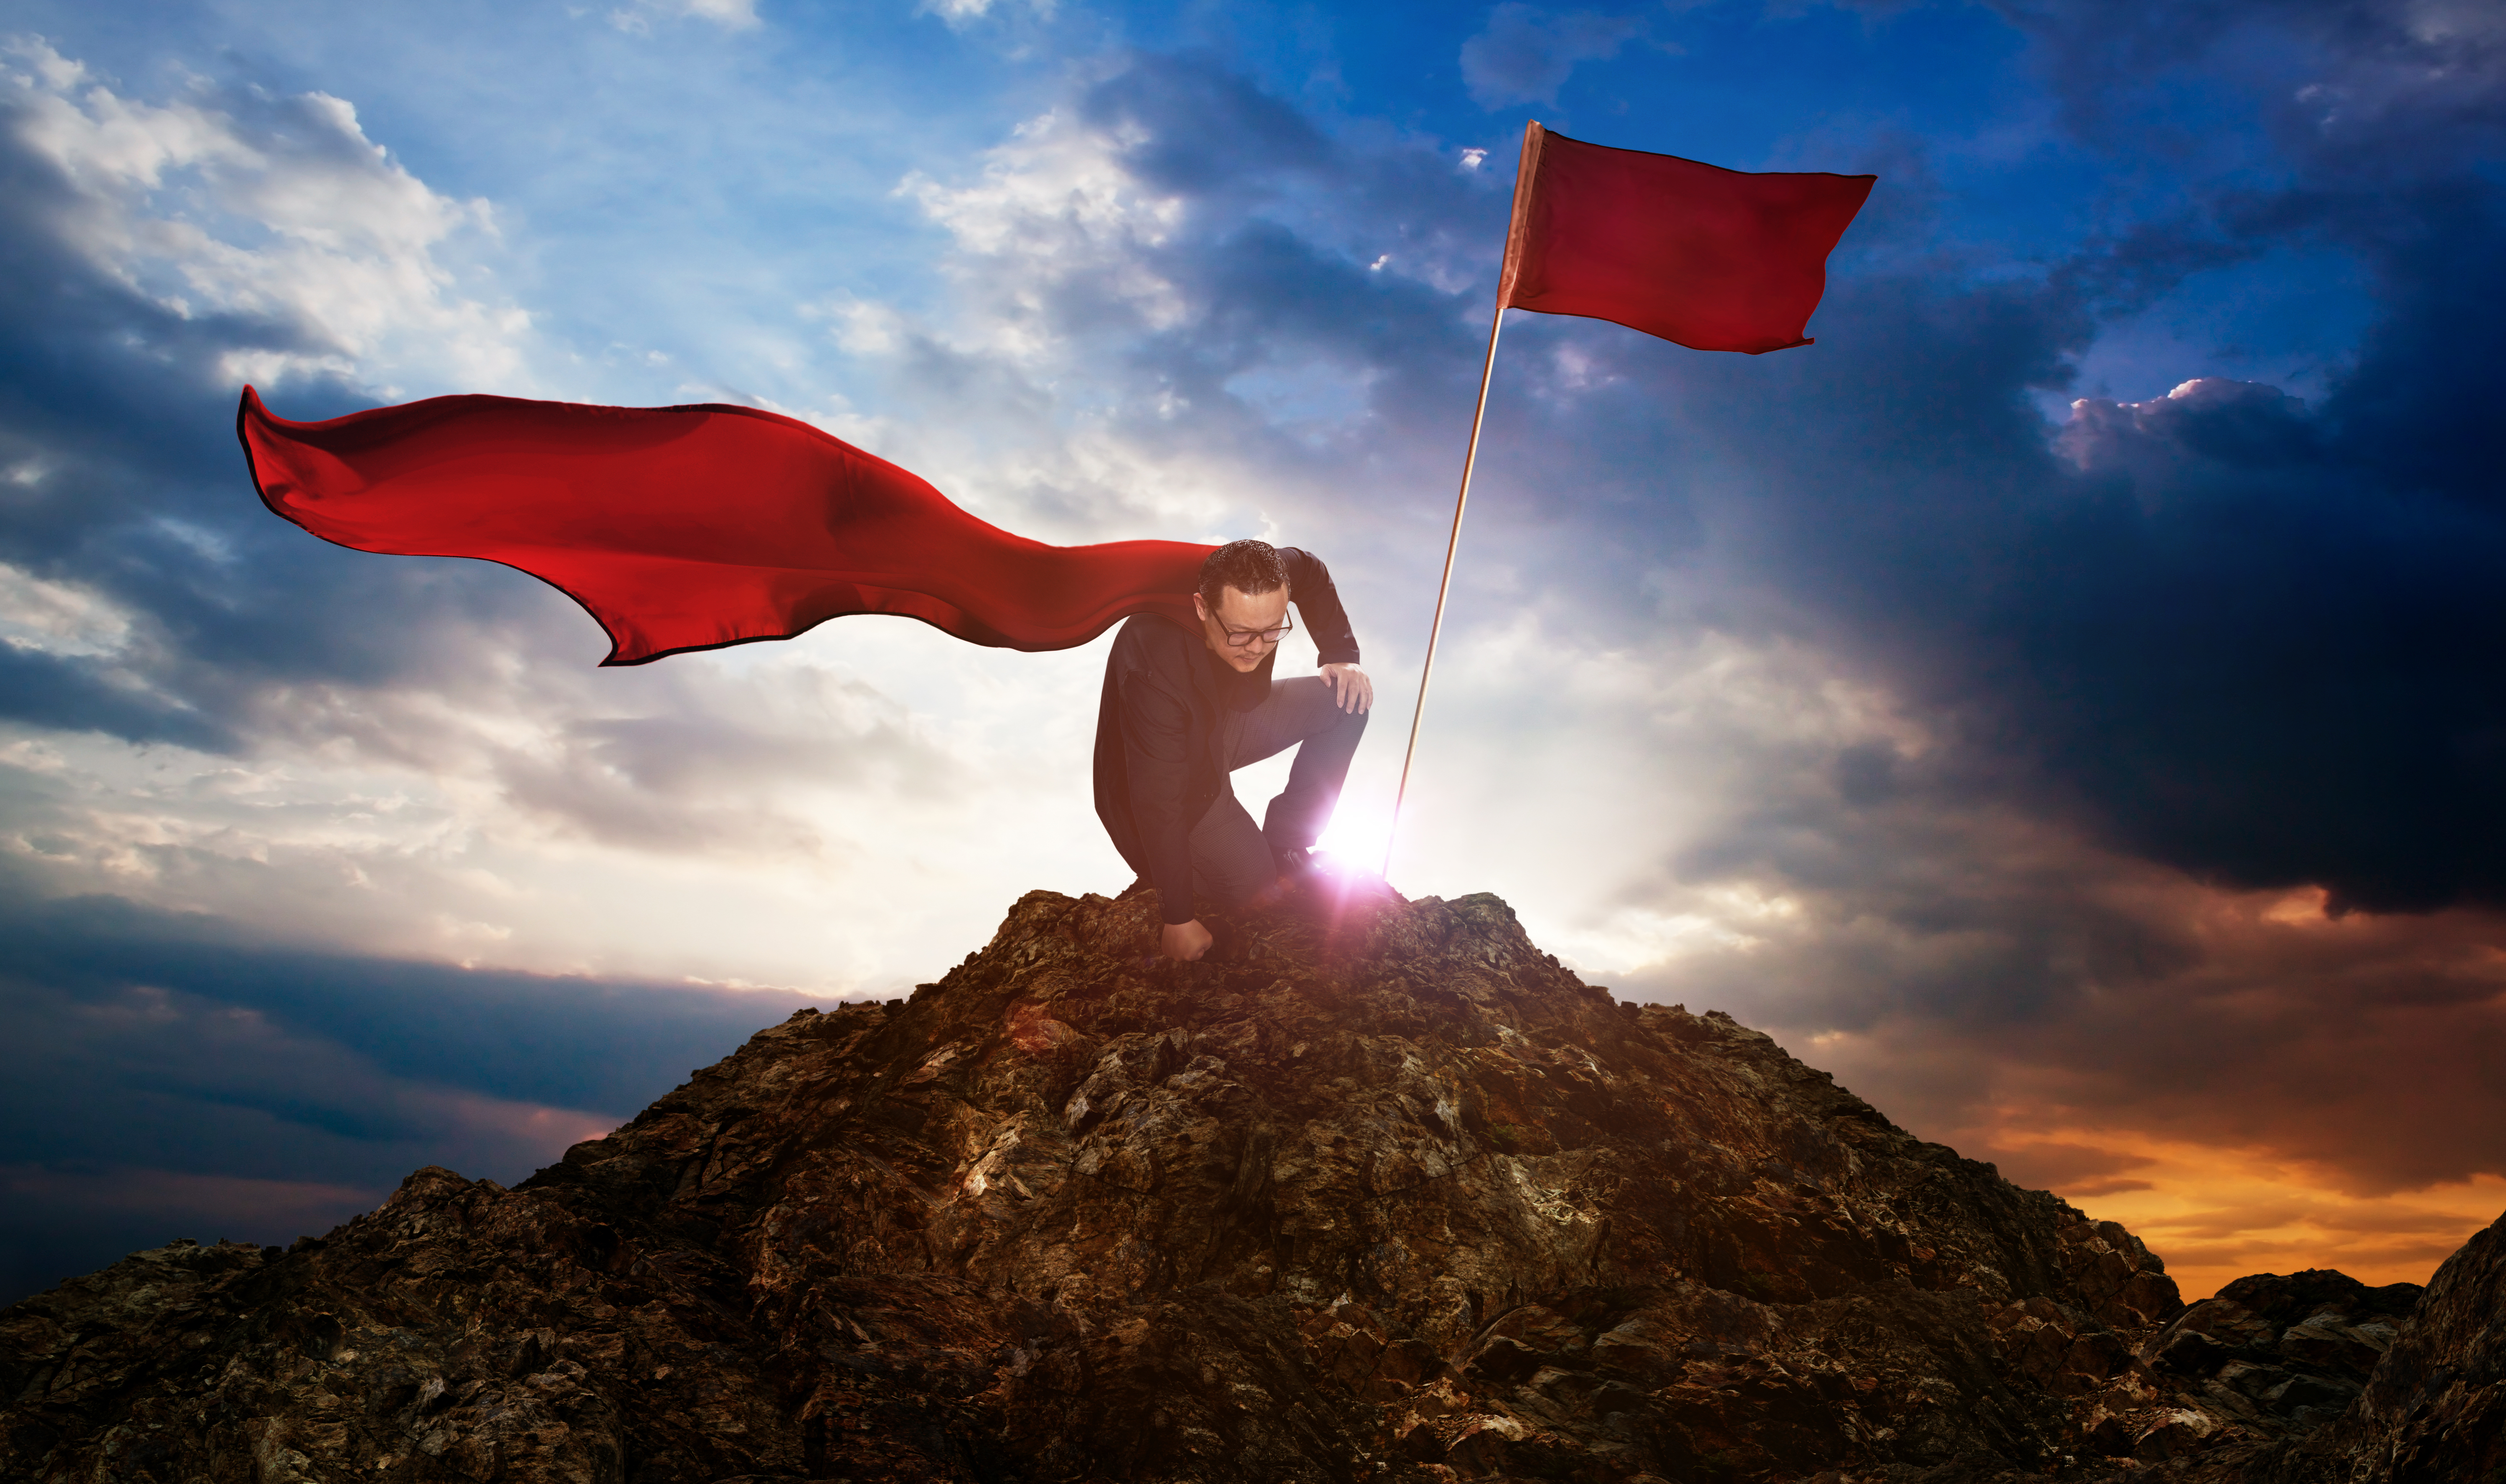 graphicstock-businessman-in-a-suit-and-cape-hero-on-top-of-a-mountainbusiness-success-concept_SuUs6oPejg